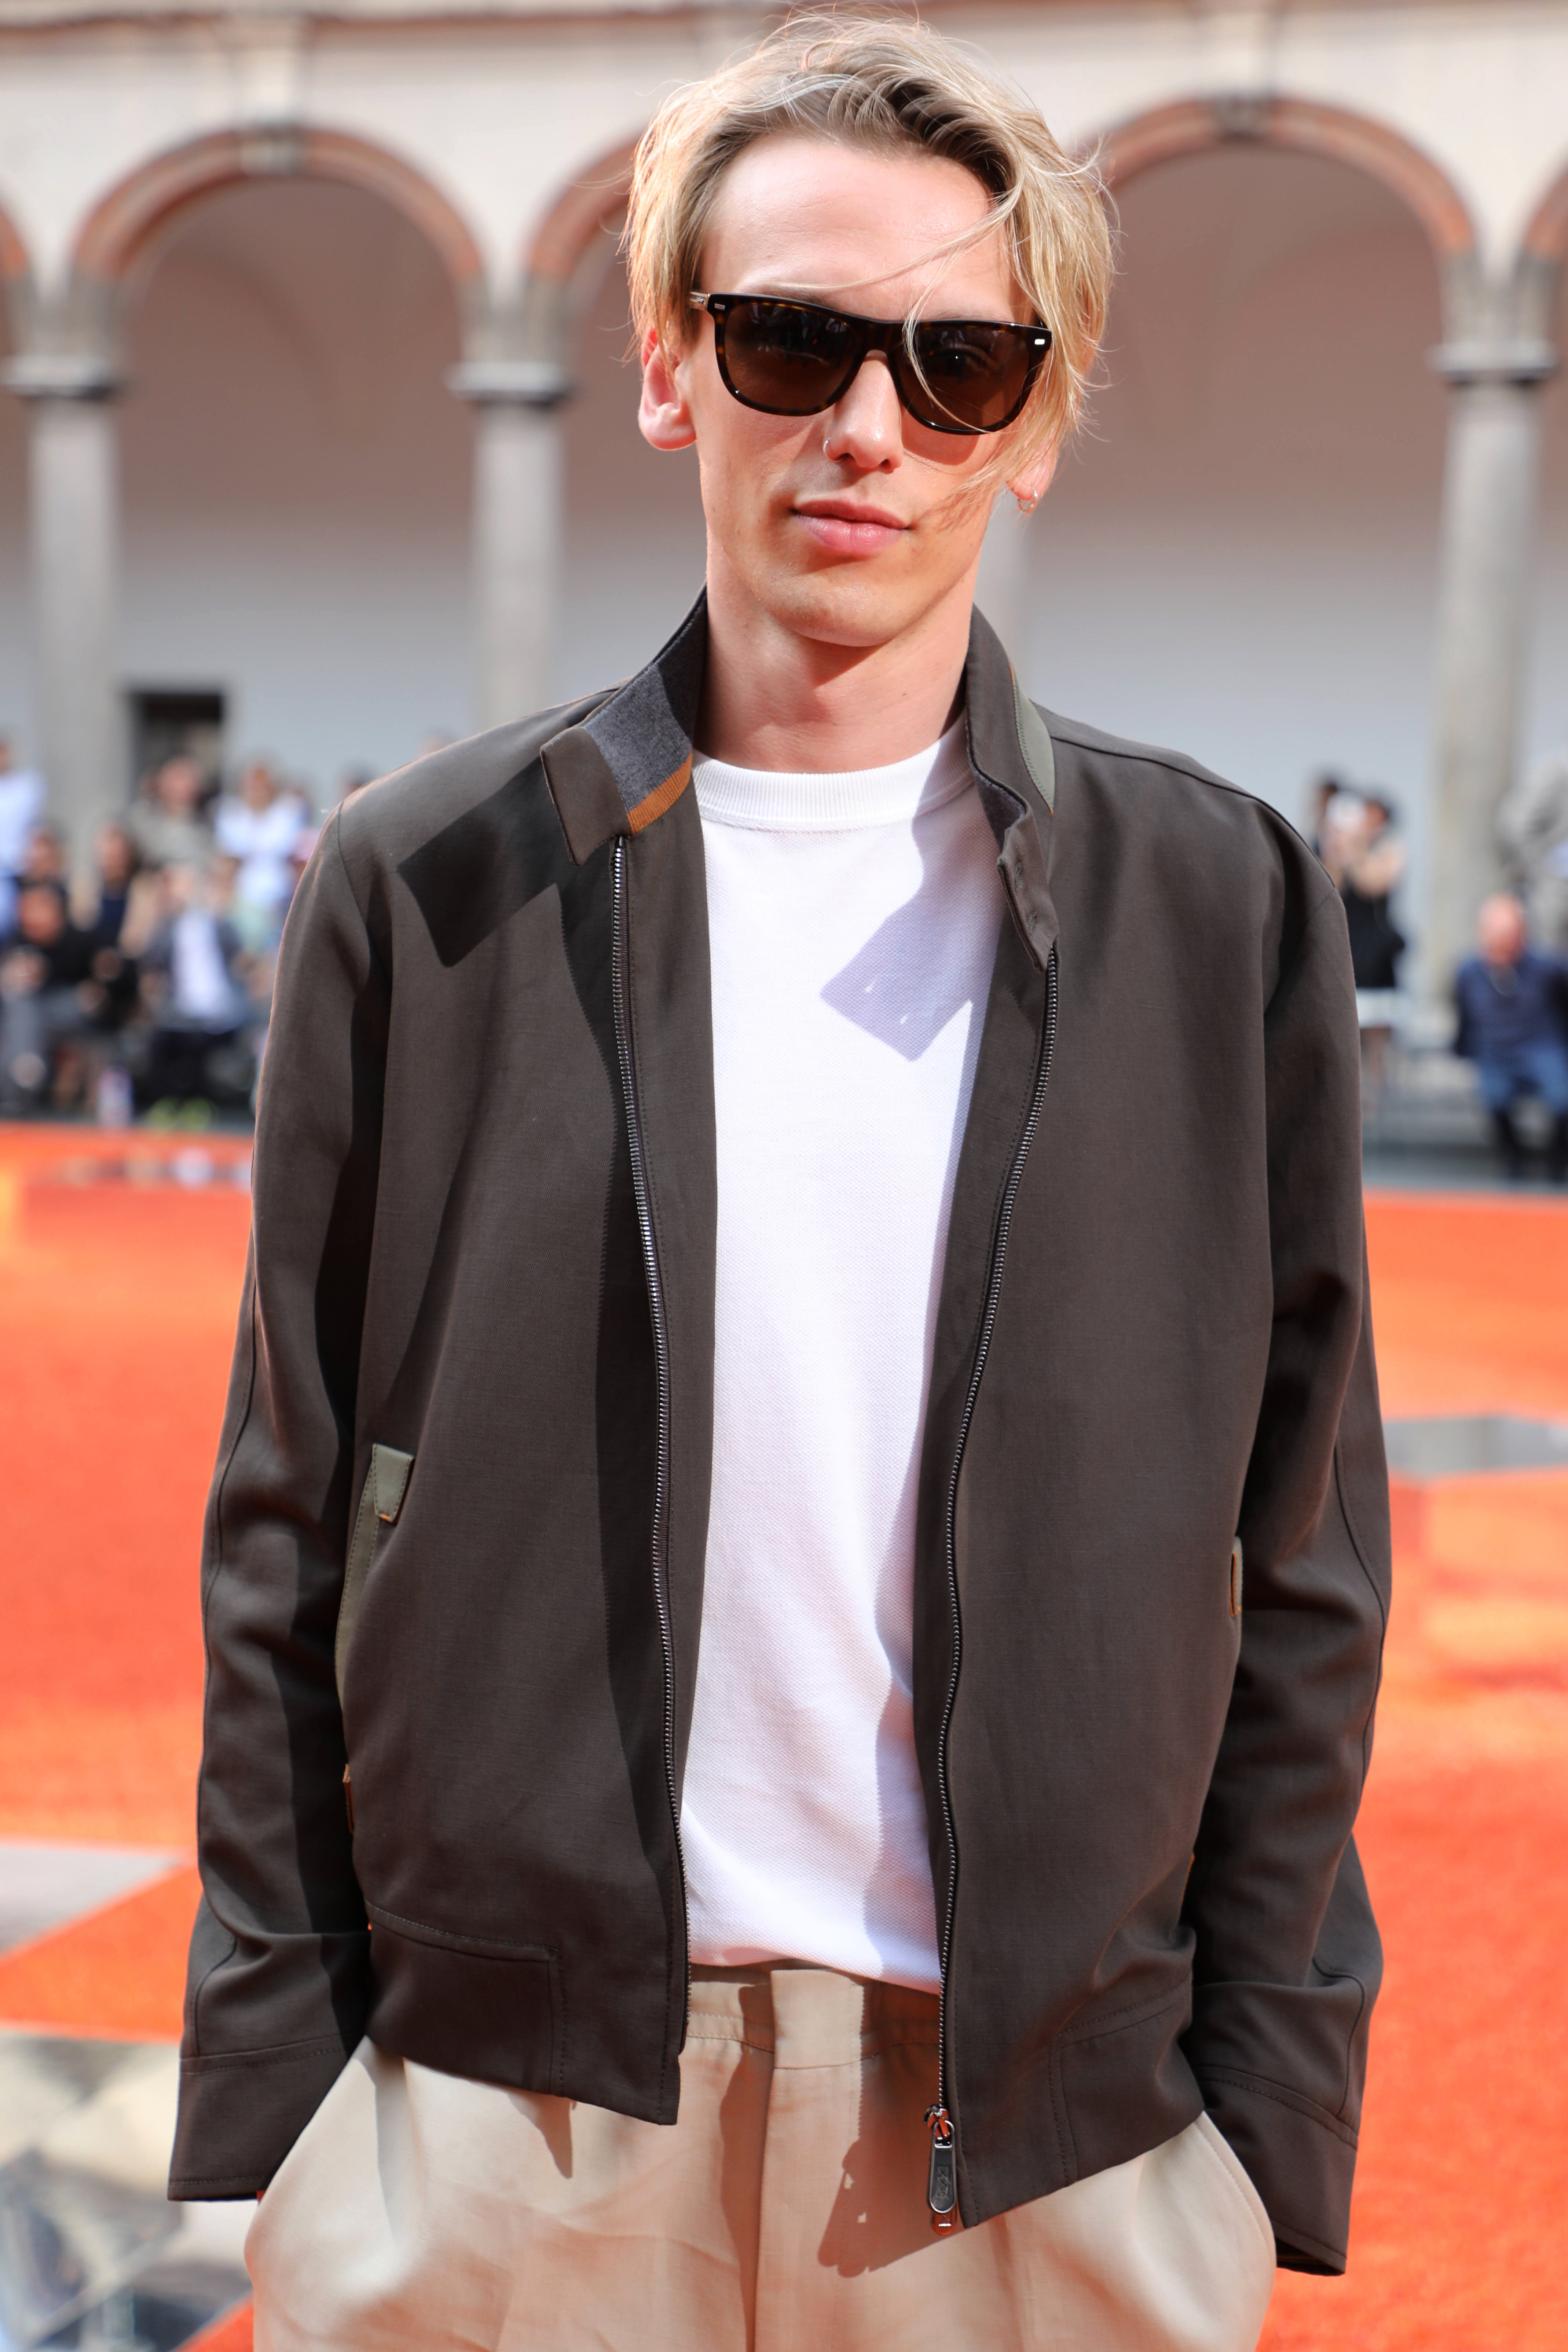 Jamie Campbell Bower in the front rowErmenegildo Zegna show, Spring Summer 2018, Milan Fashion Week Men's, Italy - 16 Jun 2017